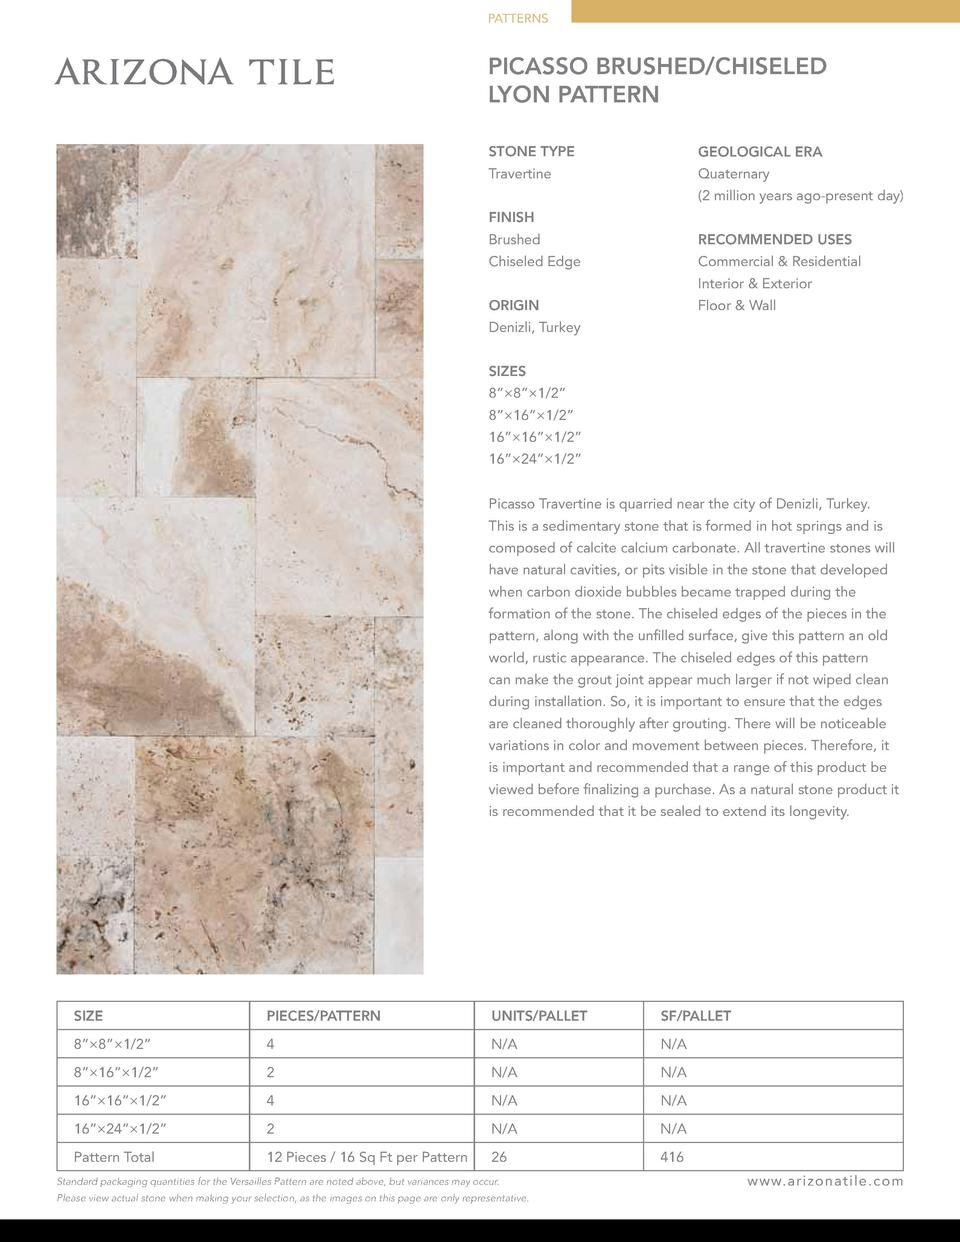 PATTERNS  PICASSO BRUSHED CHISELED LYON PATTERN STONE TYPE  GEOLOGICAL ERA  Travertine  Quaternary  2 million years ago-pr...